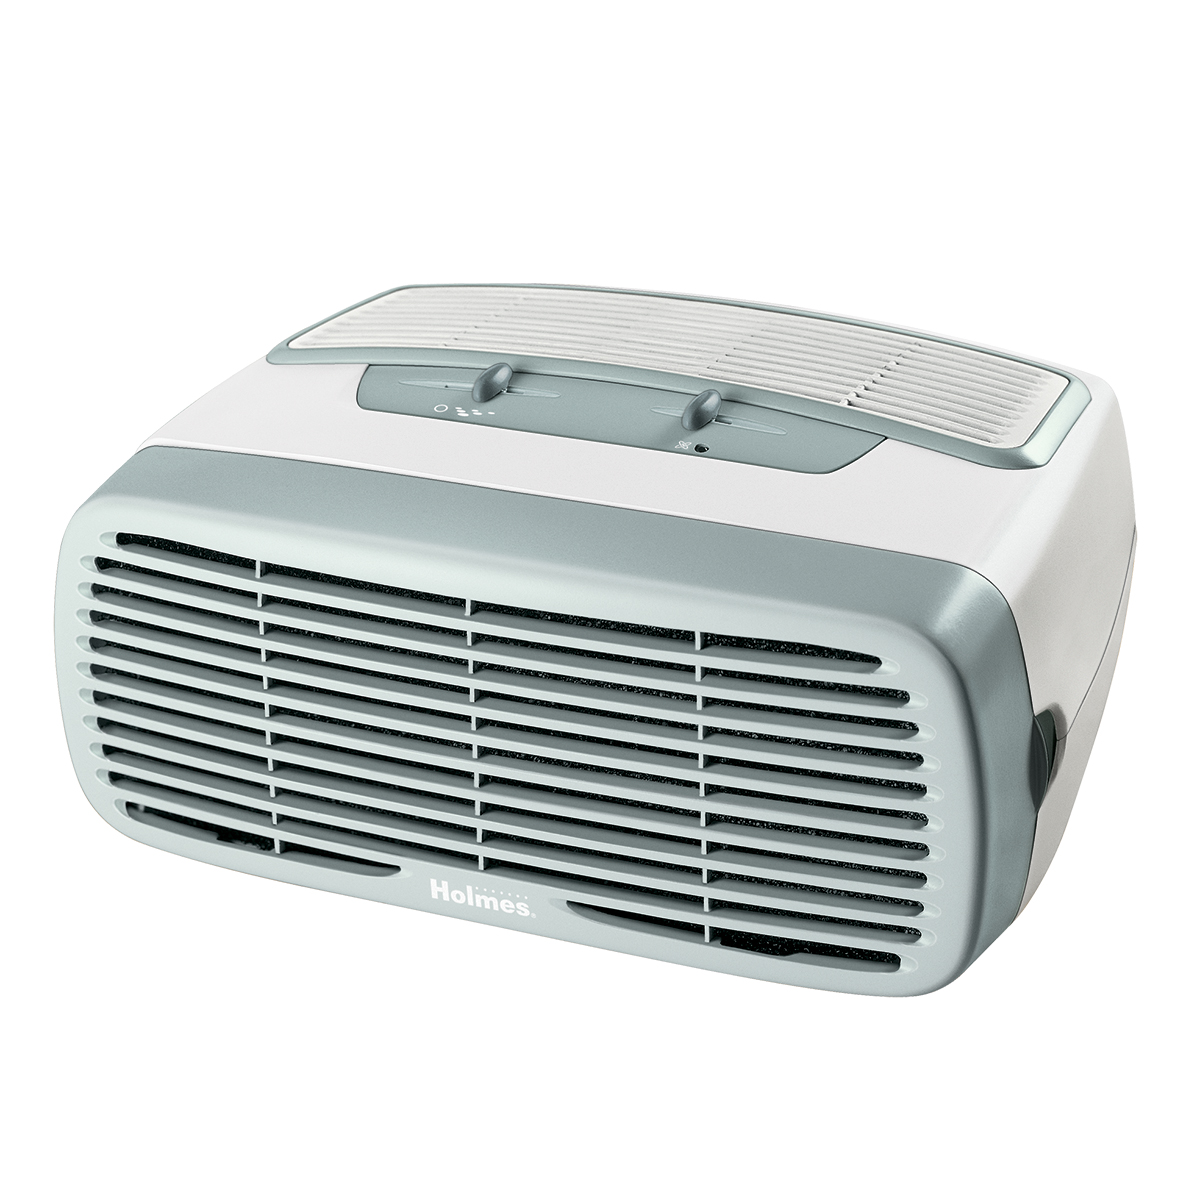 HEPA AIR PURIFIERS ARE A WASTE OF MONEY